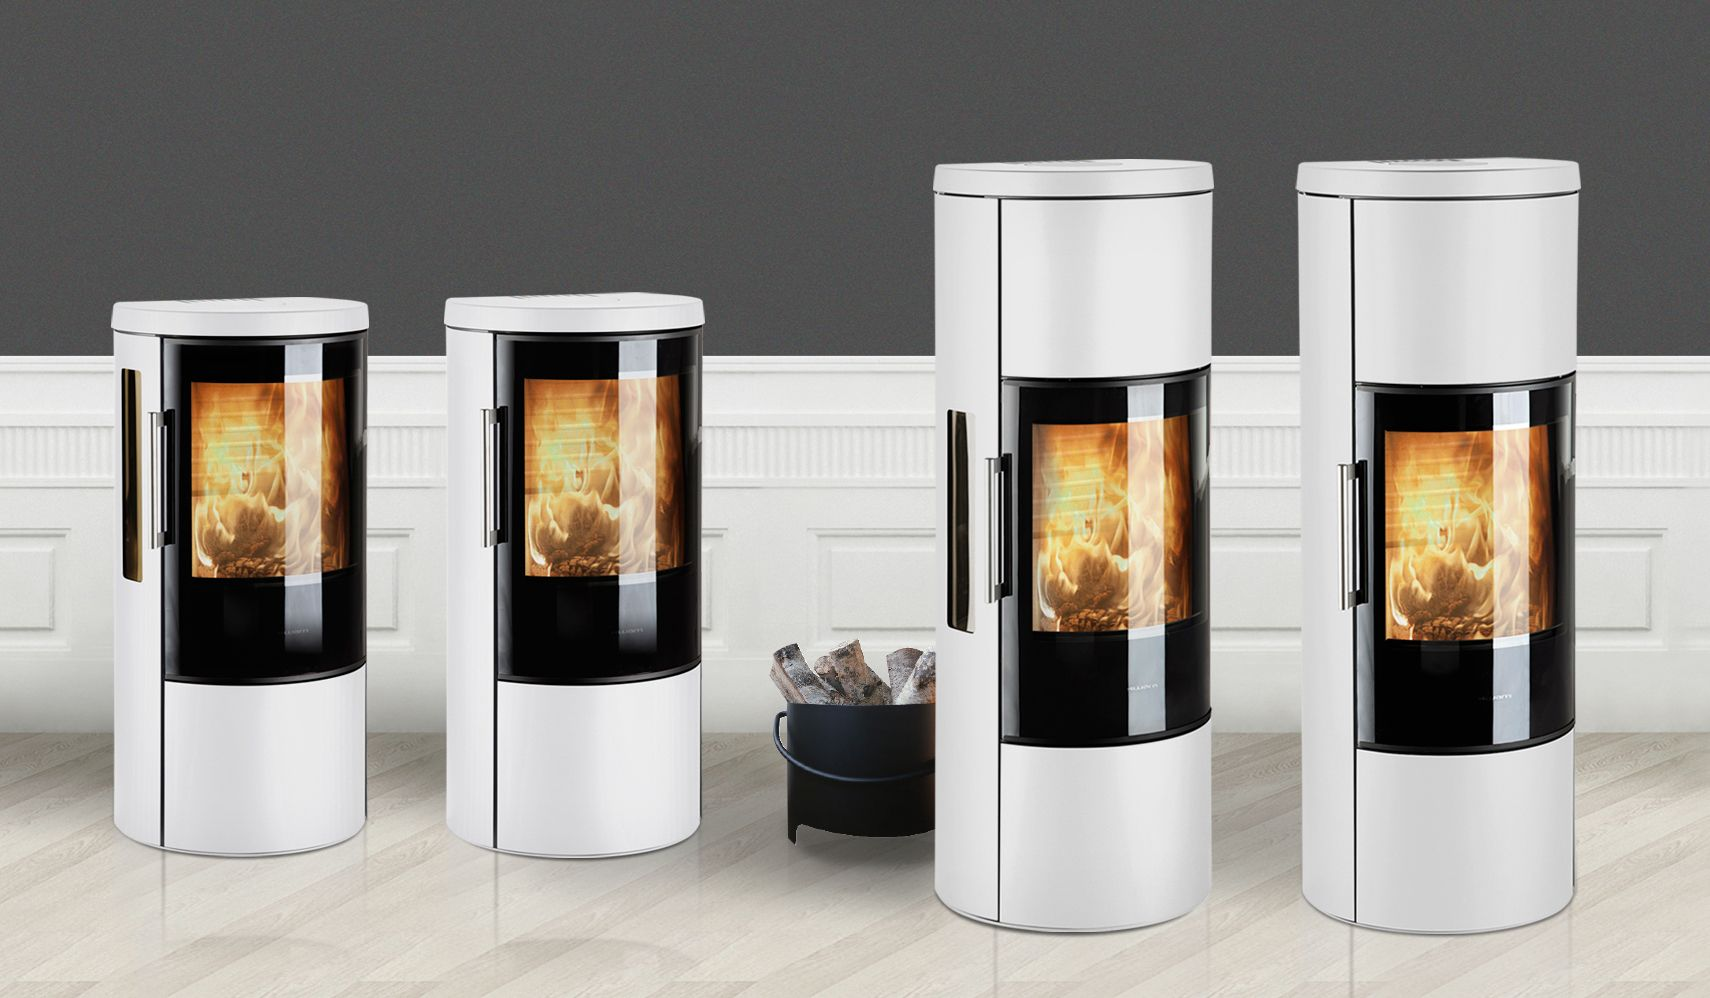 Poele Pellet Koppe 3600 Stoves In White Cooperation With Hwam Sørig Products